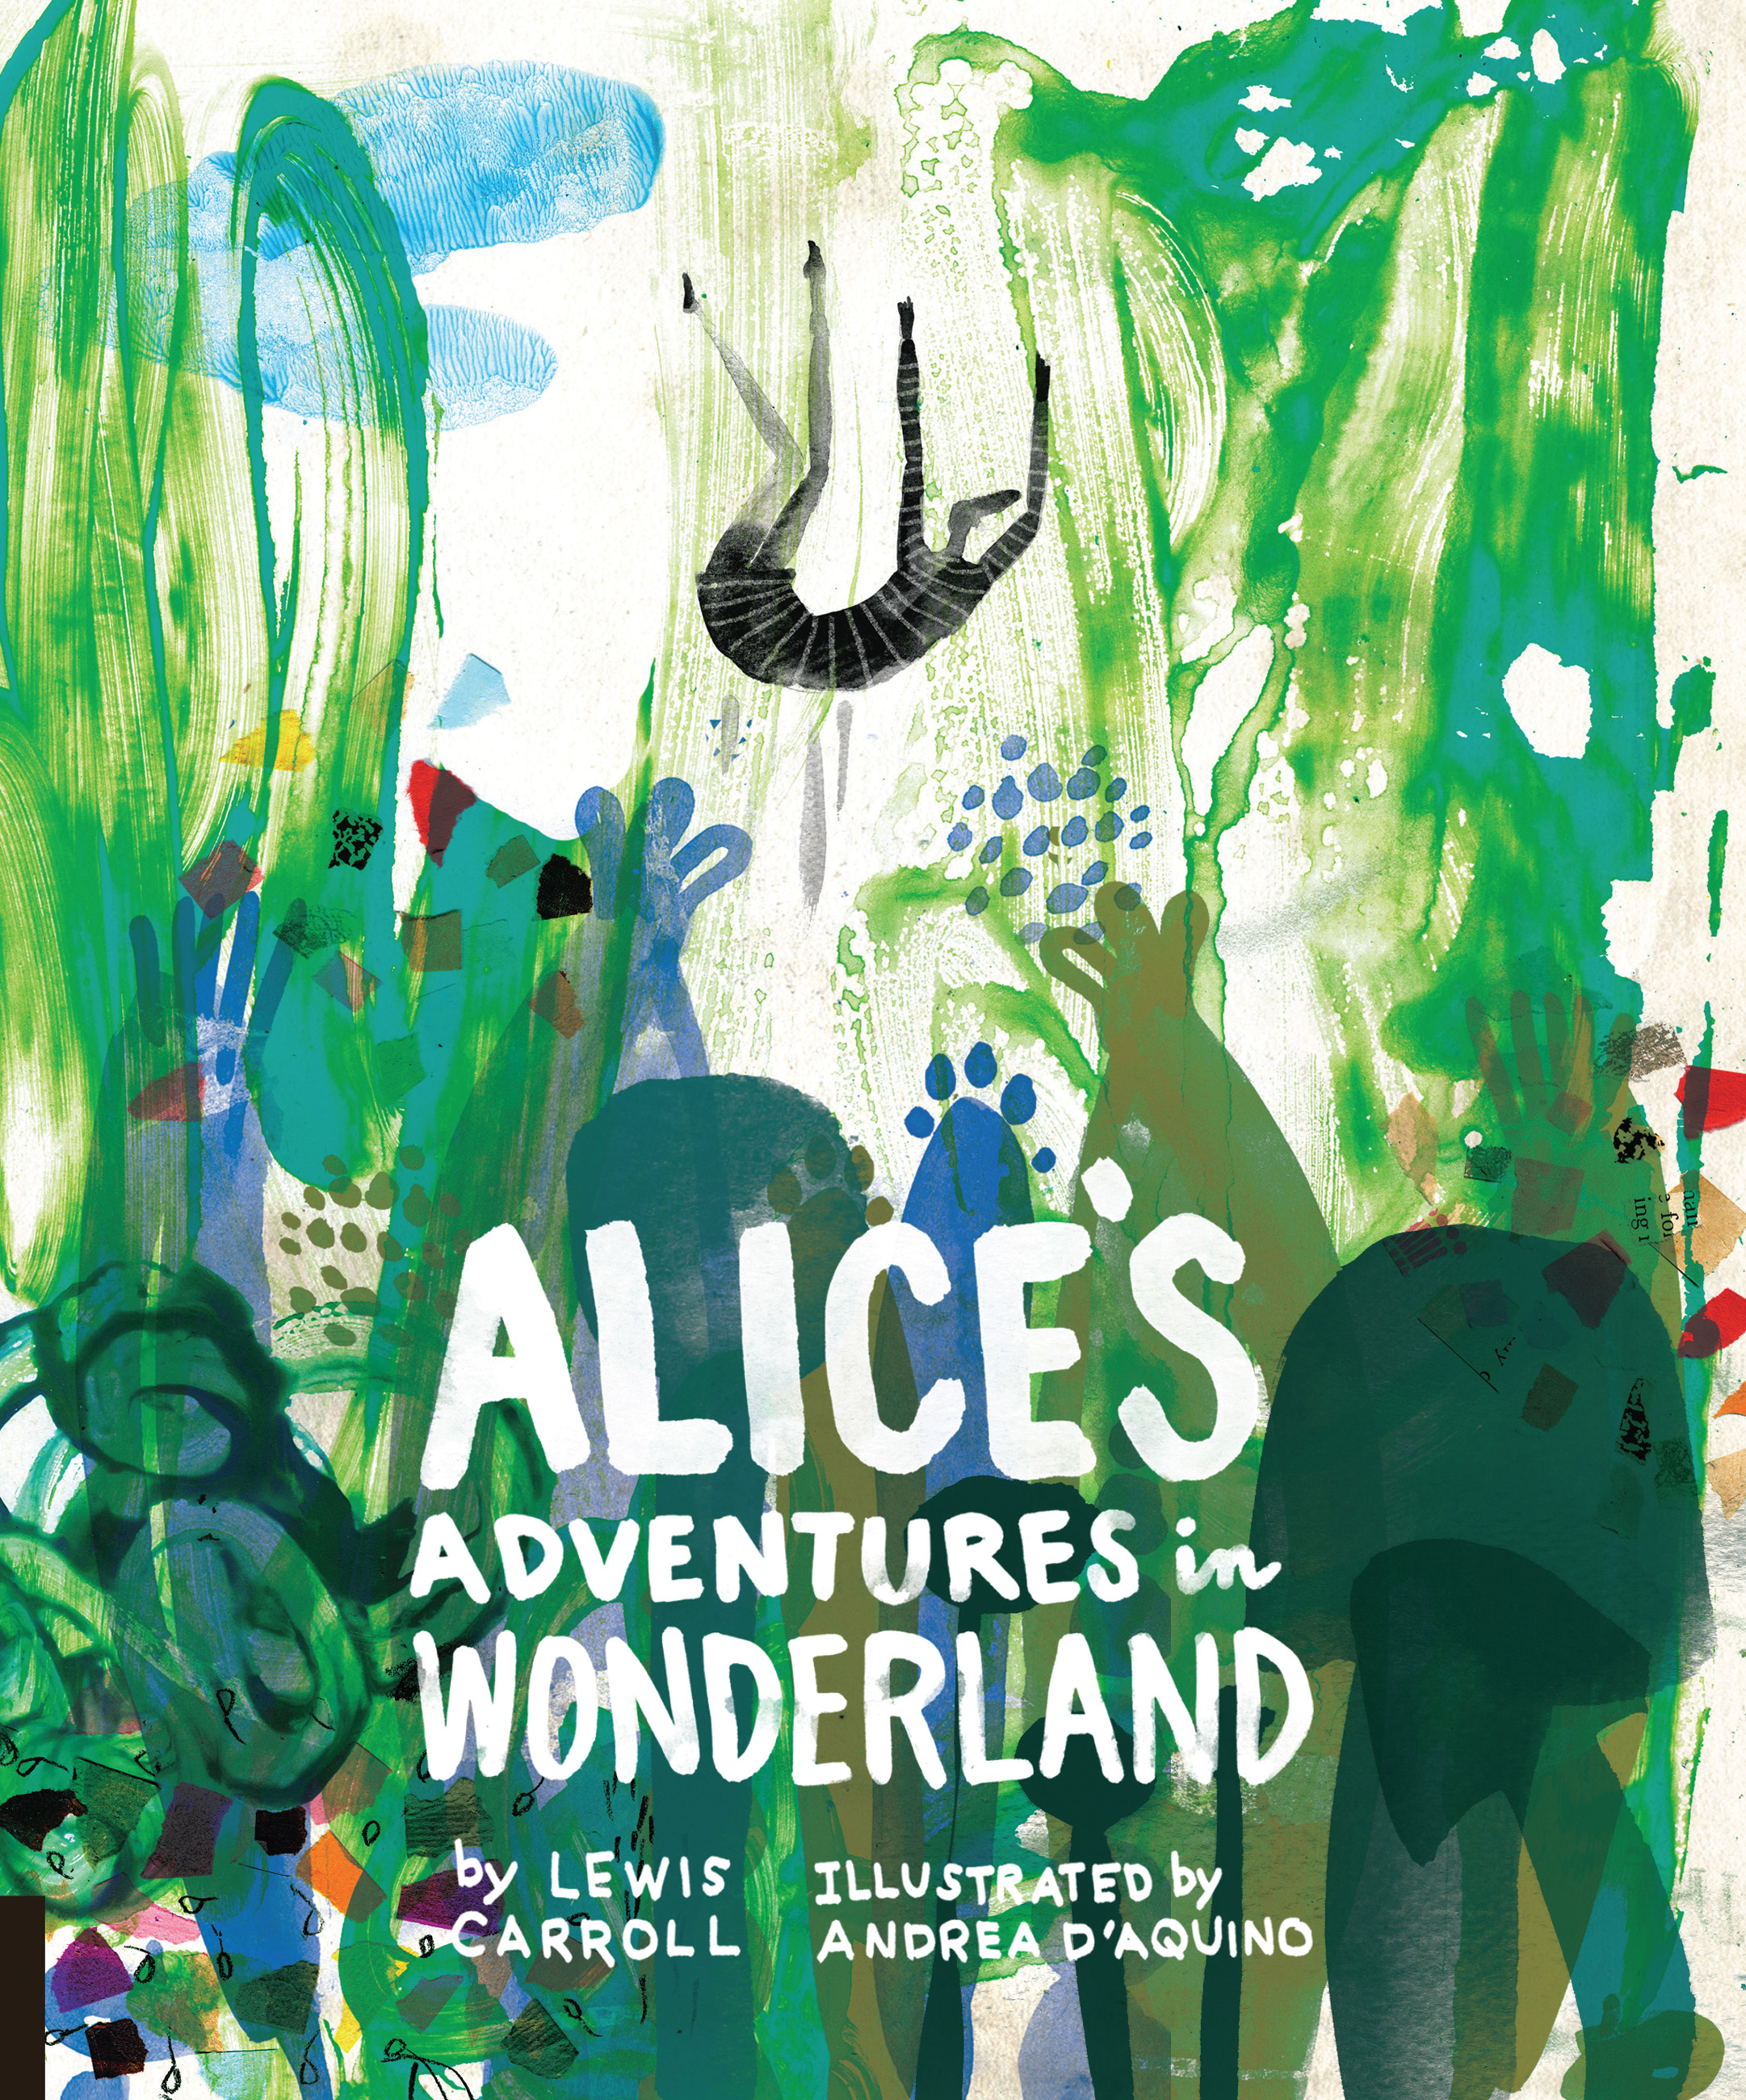 a review of lewis carolls book alice in wonderland Buy alice in wonderland: (full color illustrations) by lewis carroll, john tenniel (isbn: 9781502529558) from amazon's book store everyday low prices and free delivery on.